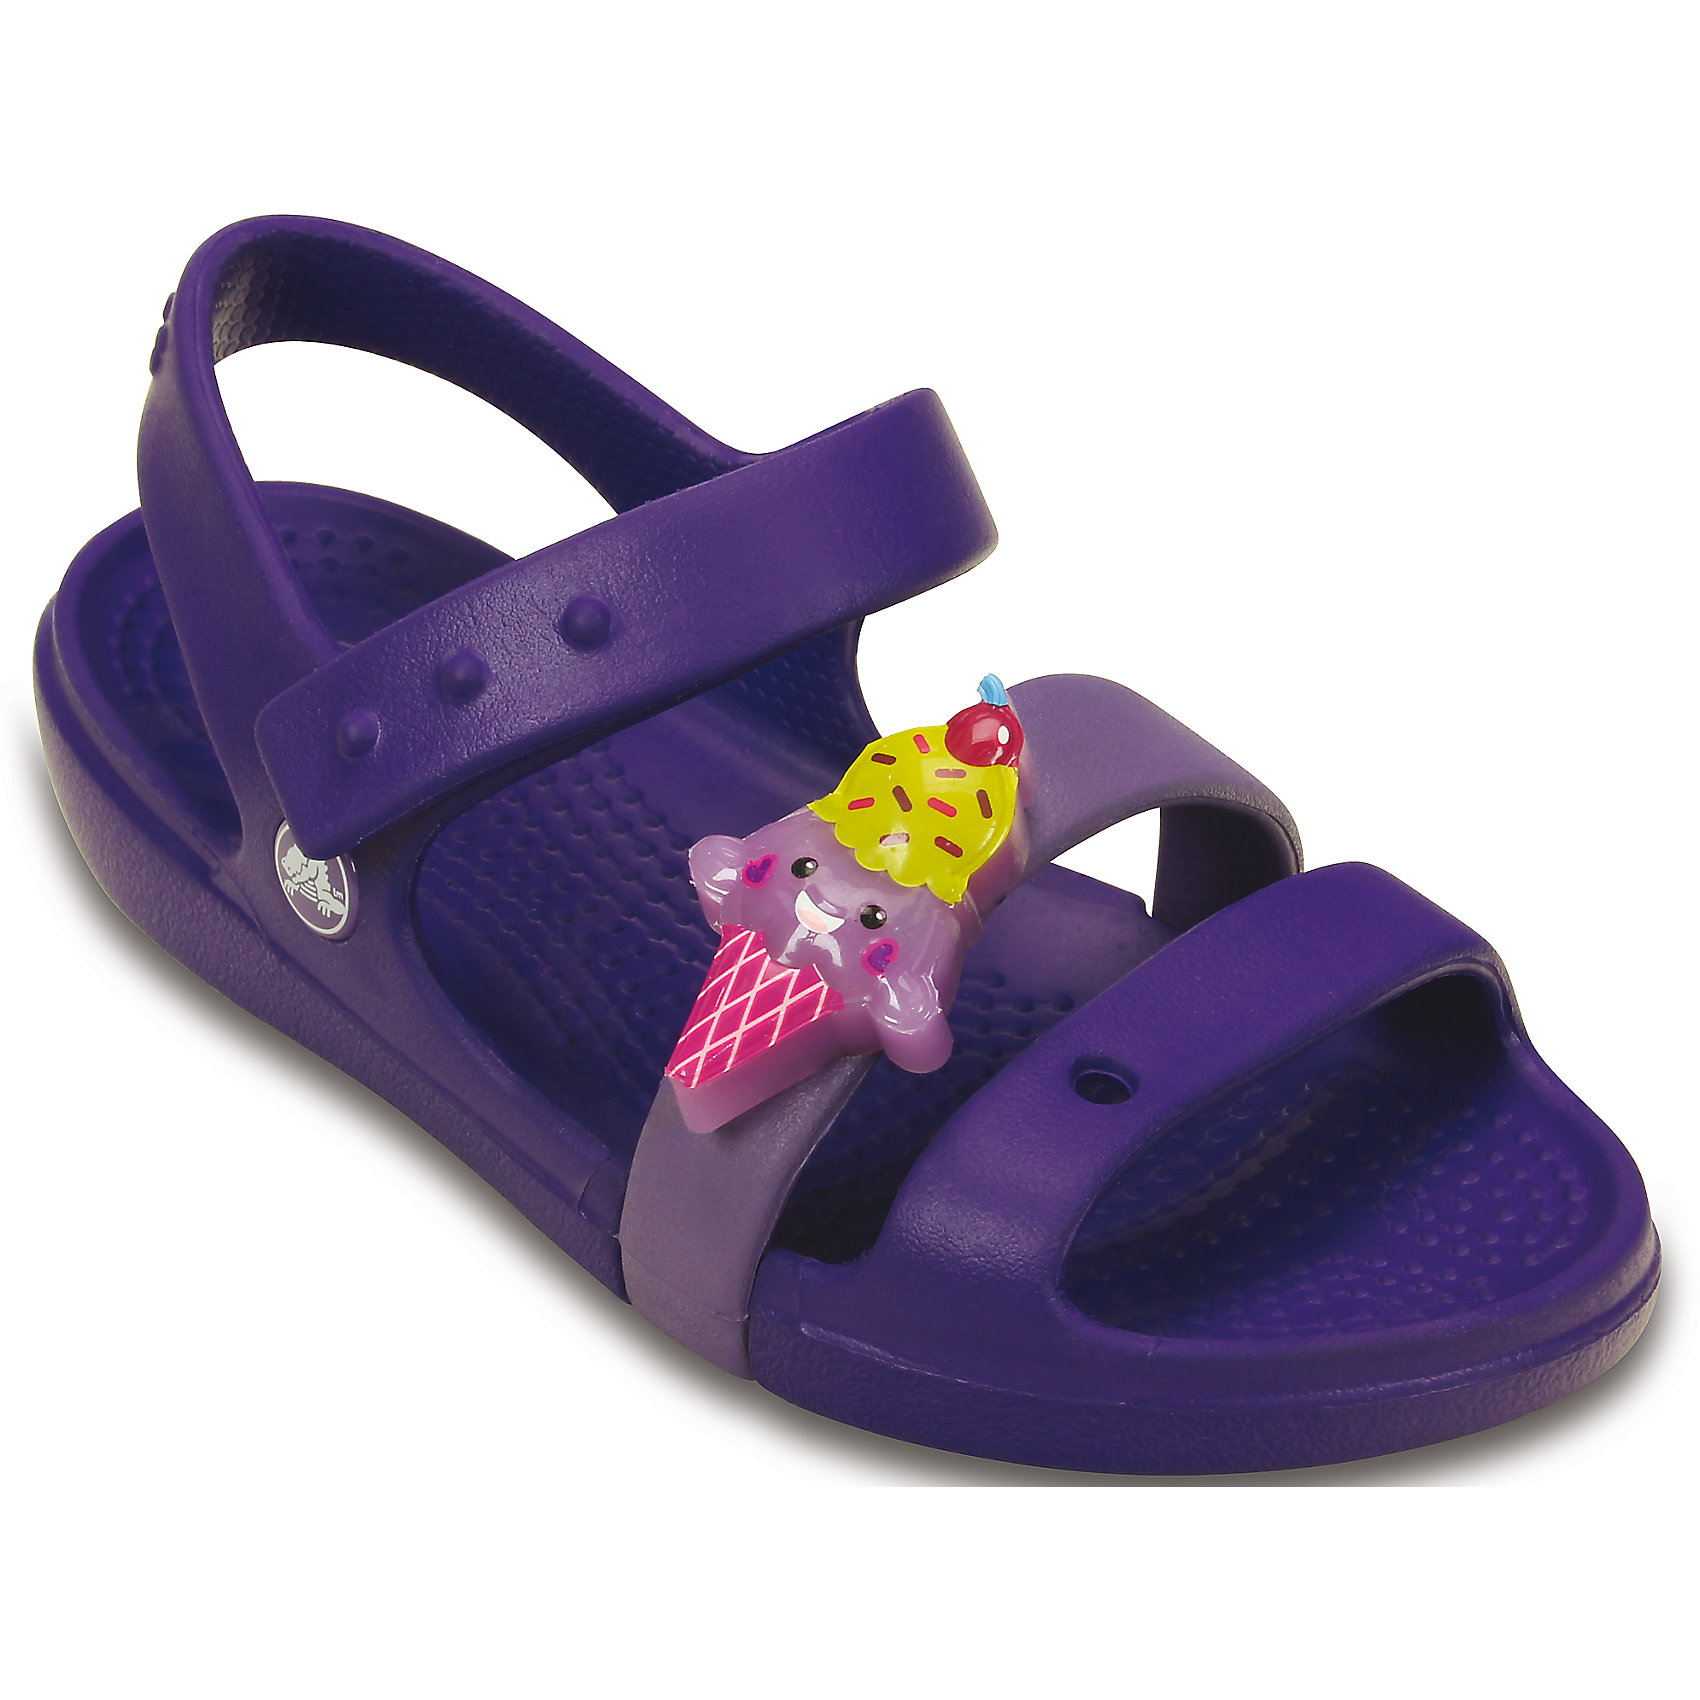 crocs Сандалии Keeley Sweets LED Sandal K Crocs купить crocs в америке с доставкой в россию